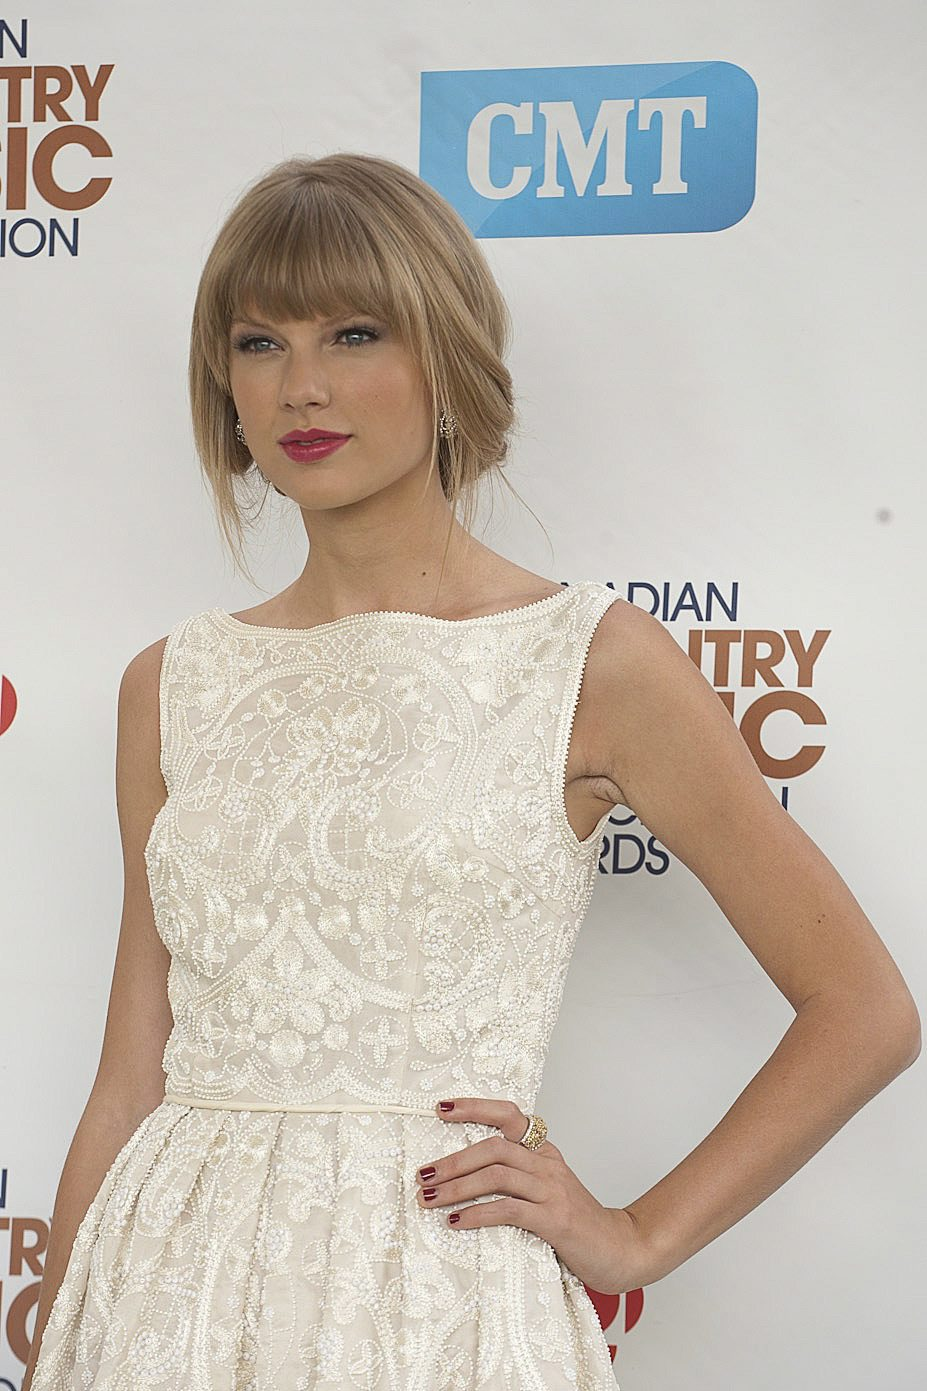 http://www.taylorpictures.net/albums/app/2012/ccmaawards/003.jpg